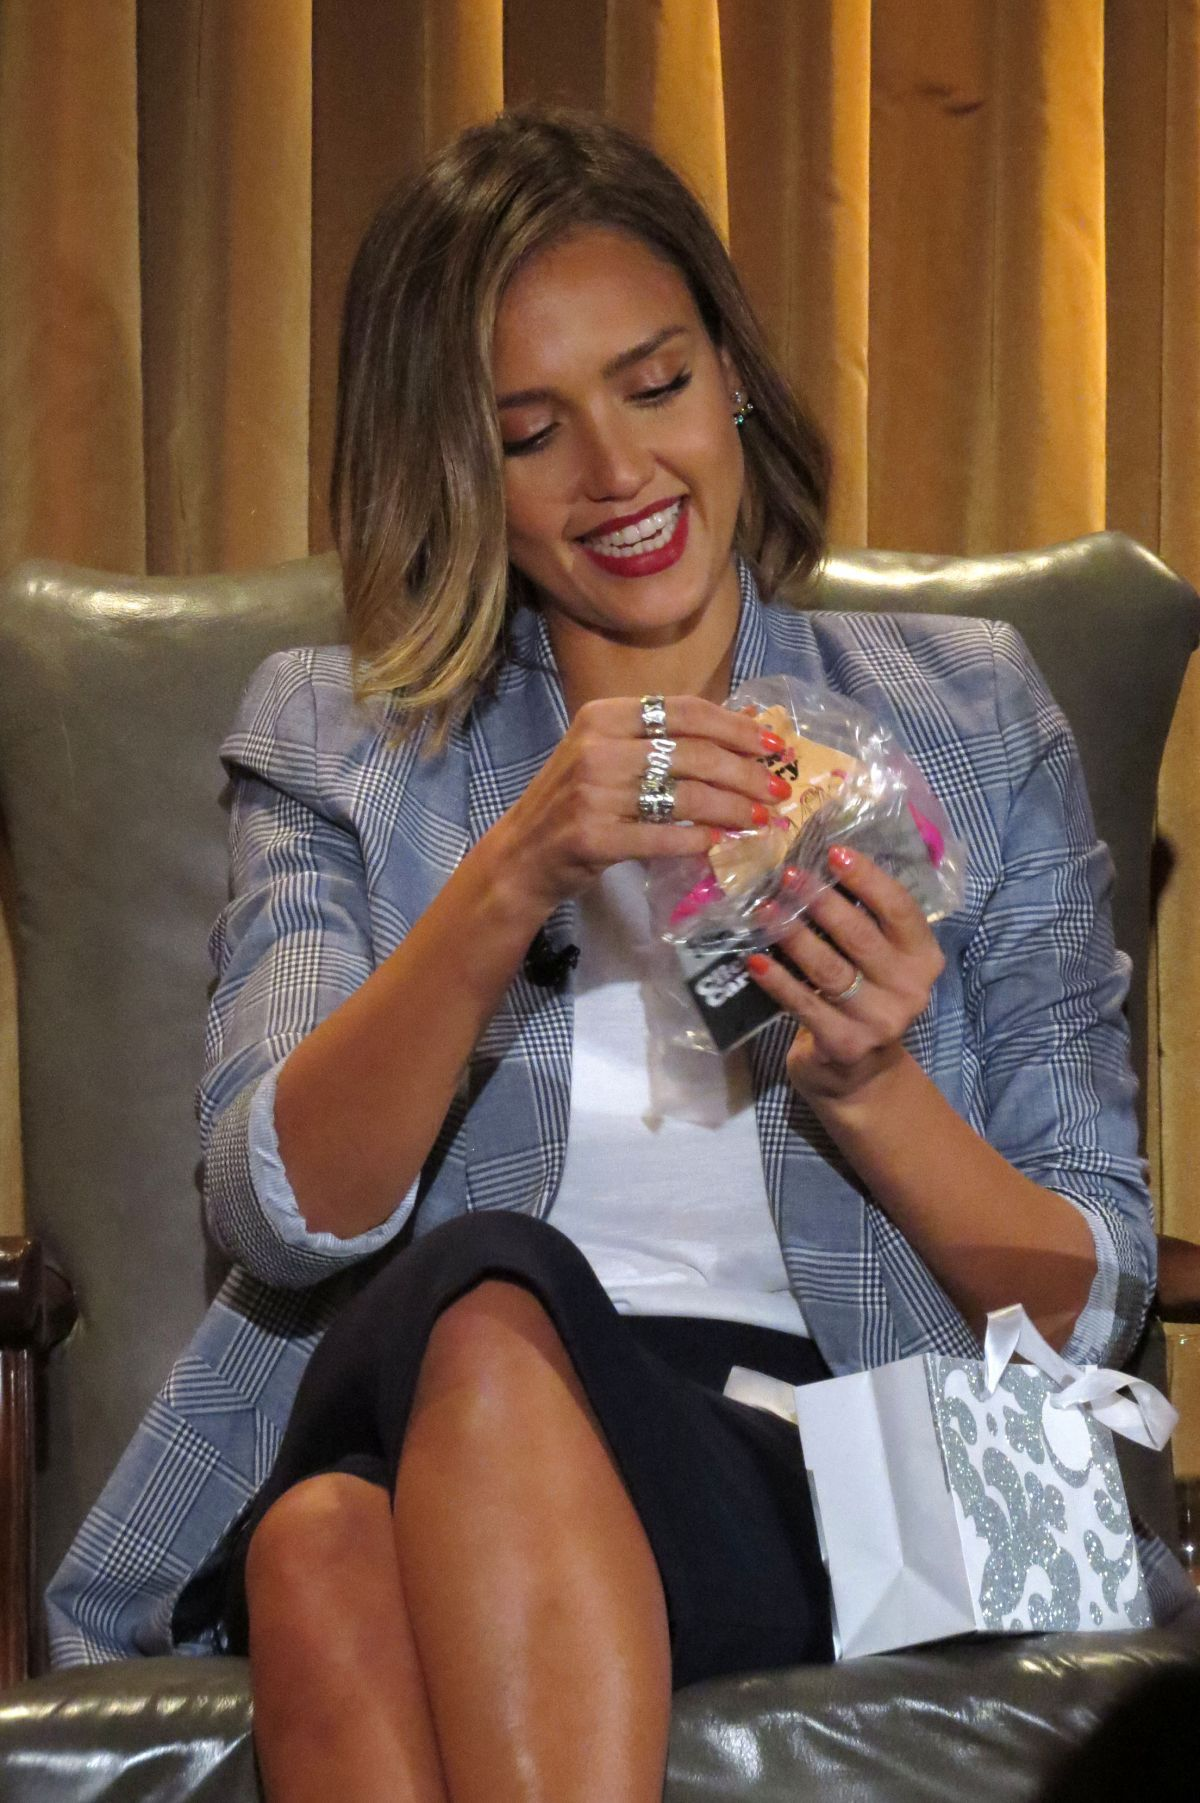 JESSICA ALBA at Honest Company Q&A in Beverly Hills - HawtCelebs